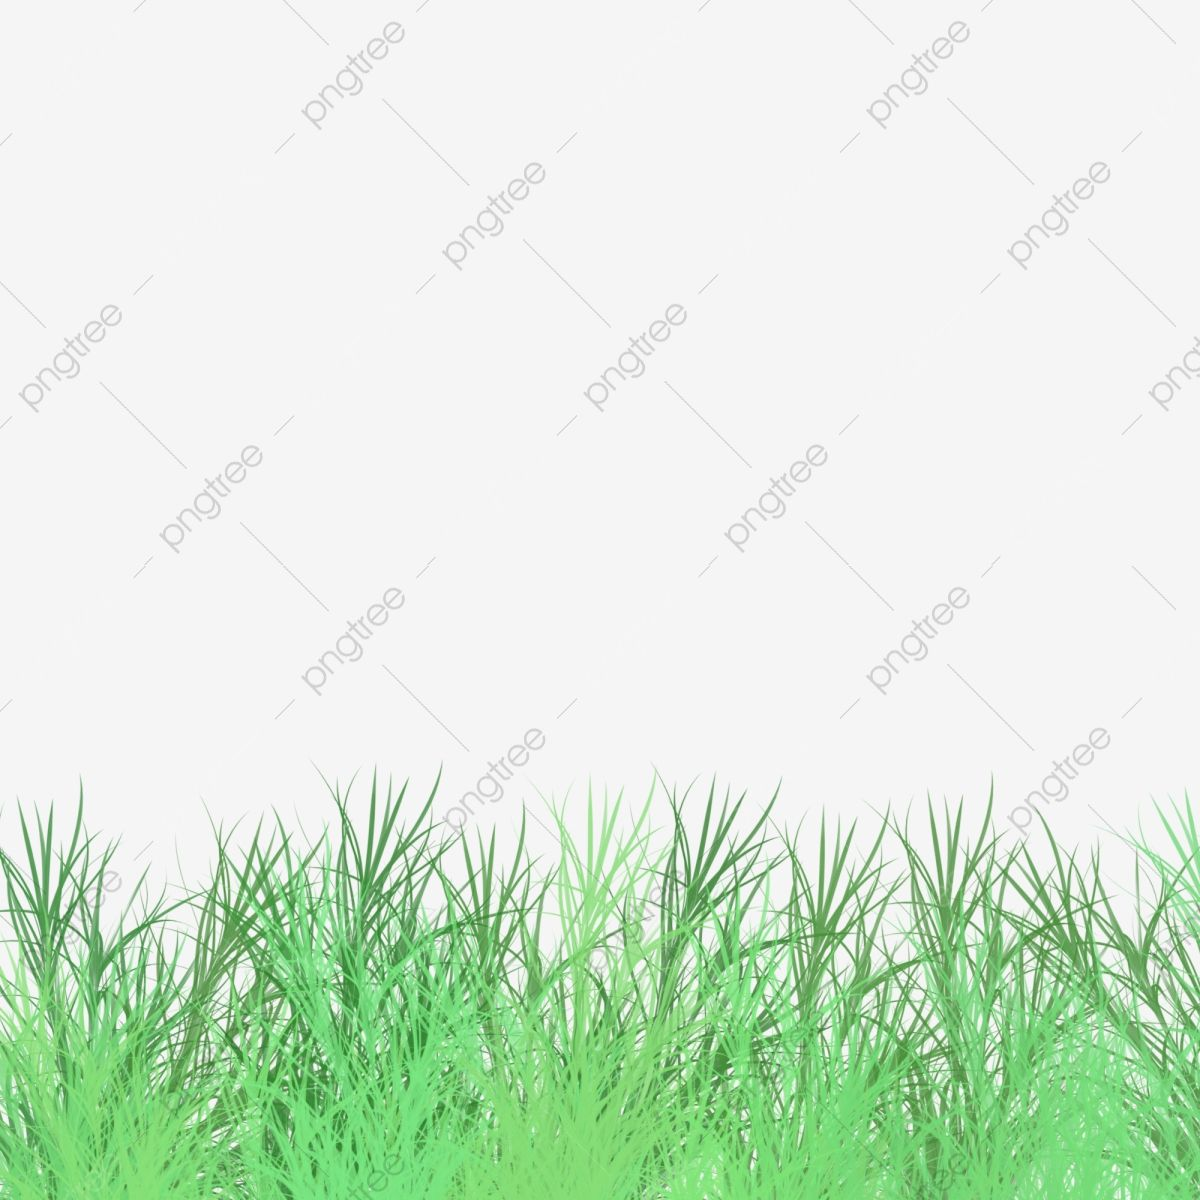 Decorative Green Space Fresh Green Grass Grassland Grass Green Grass Cartoon Green Grass Png Transparent Clipart Image And Psd File For Free Download Green Grass Background Green Grass Green Space